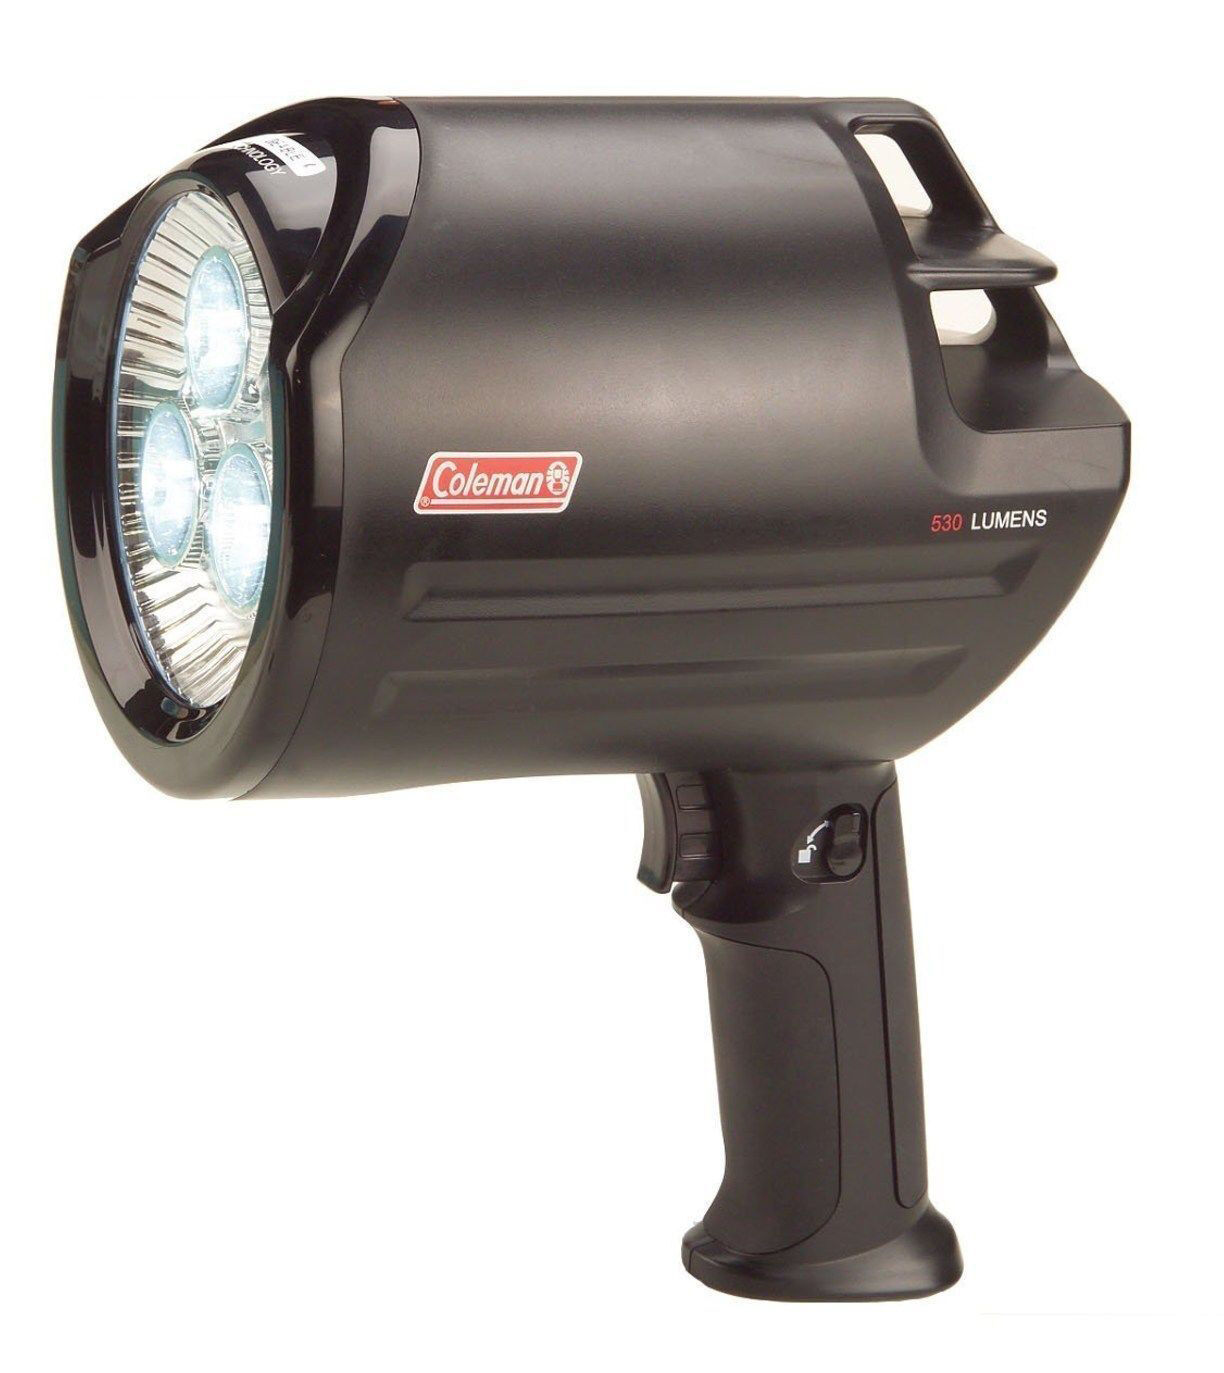 Led Spotlight Rechargeable: Top 10 Rechargeable Spotlights